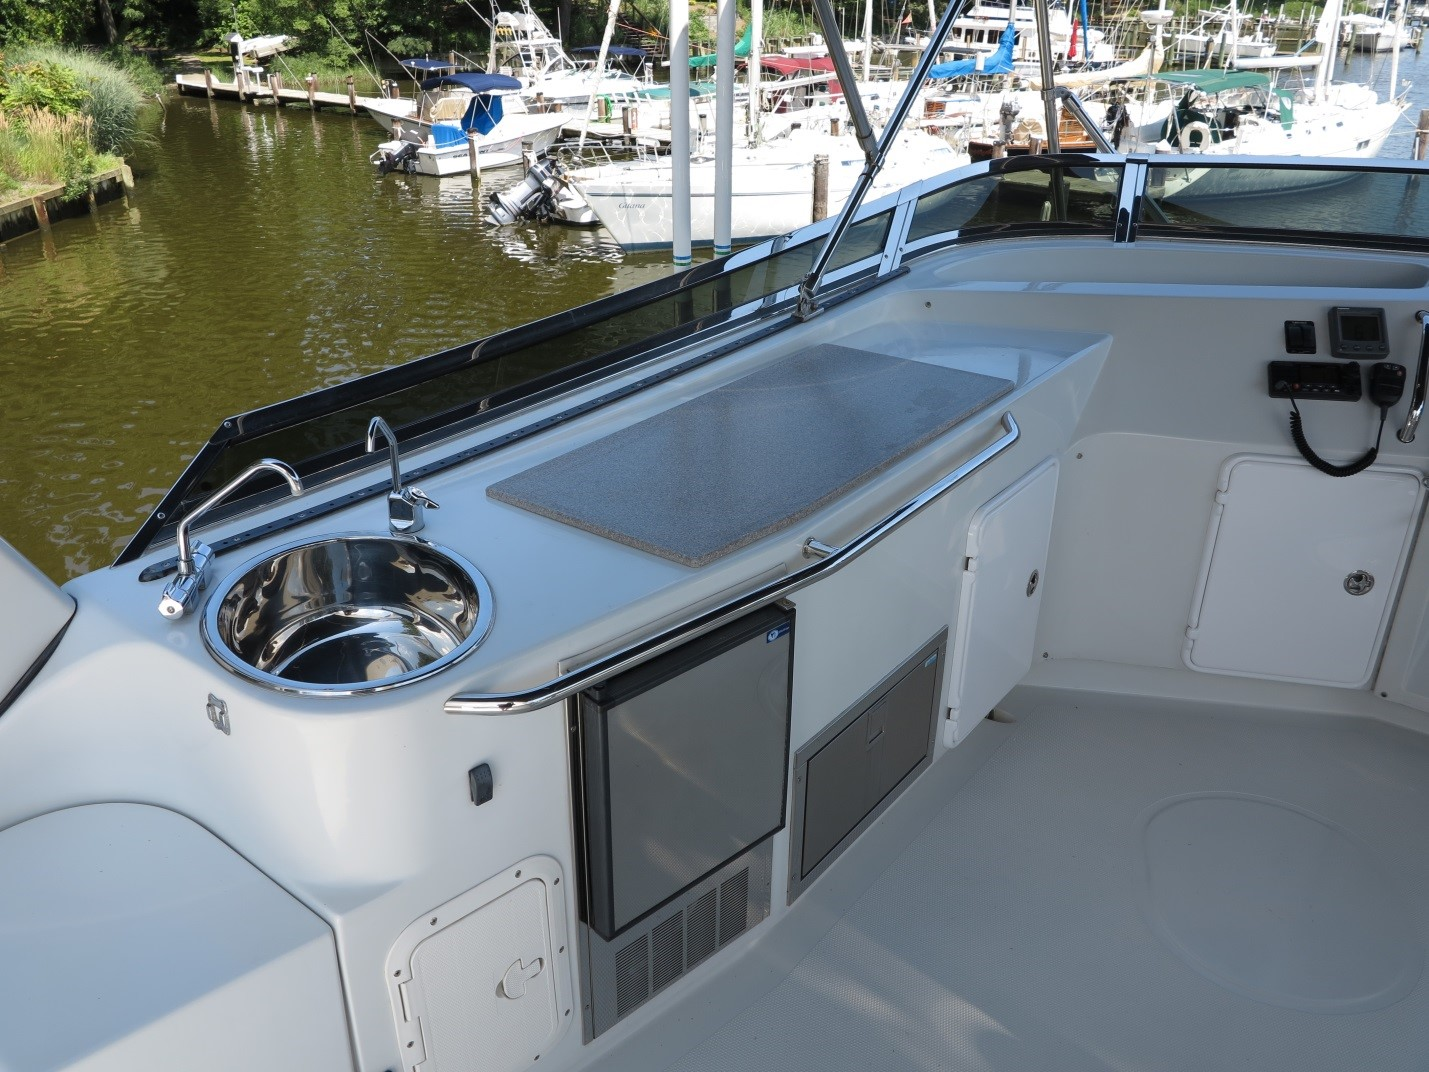 The updated flybridge area includes a Corian countertop, Seagull filtered water faucet, and access door to the inside of this large space. If the bridge was fully enclosed, this area could further configured for living on the flybridge. Without the grill, there is space above the fridge for a larger pull-out drawer to hold the many things we need for cruising, entertaining, and simply living aboard.